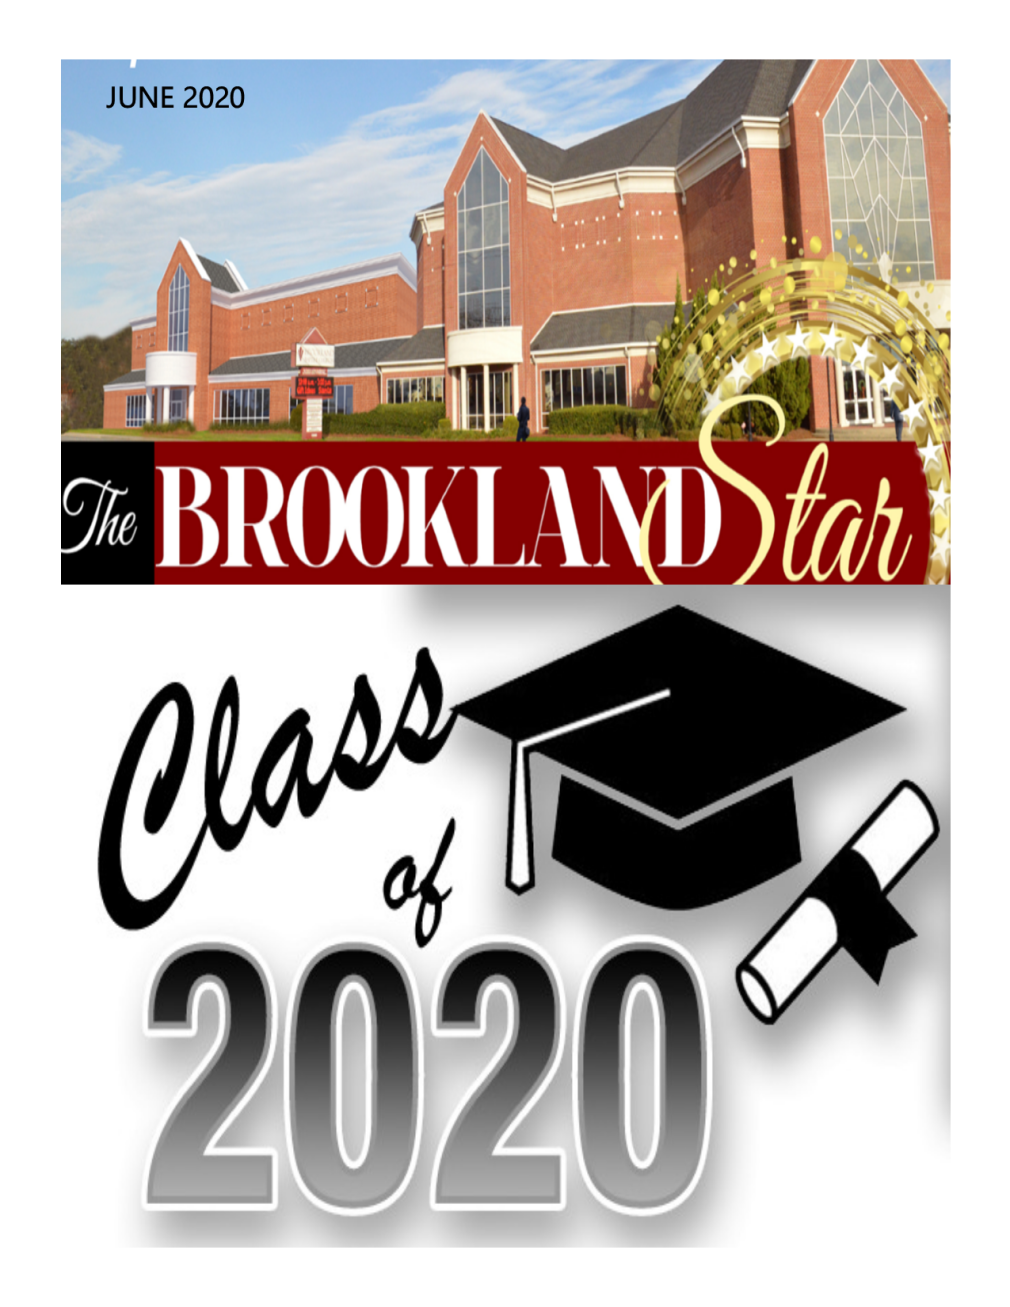 The Brookland Star June 2020 Edition